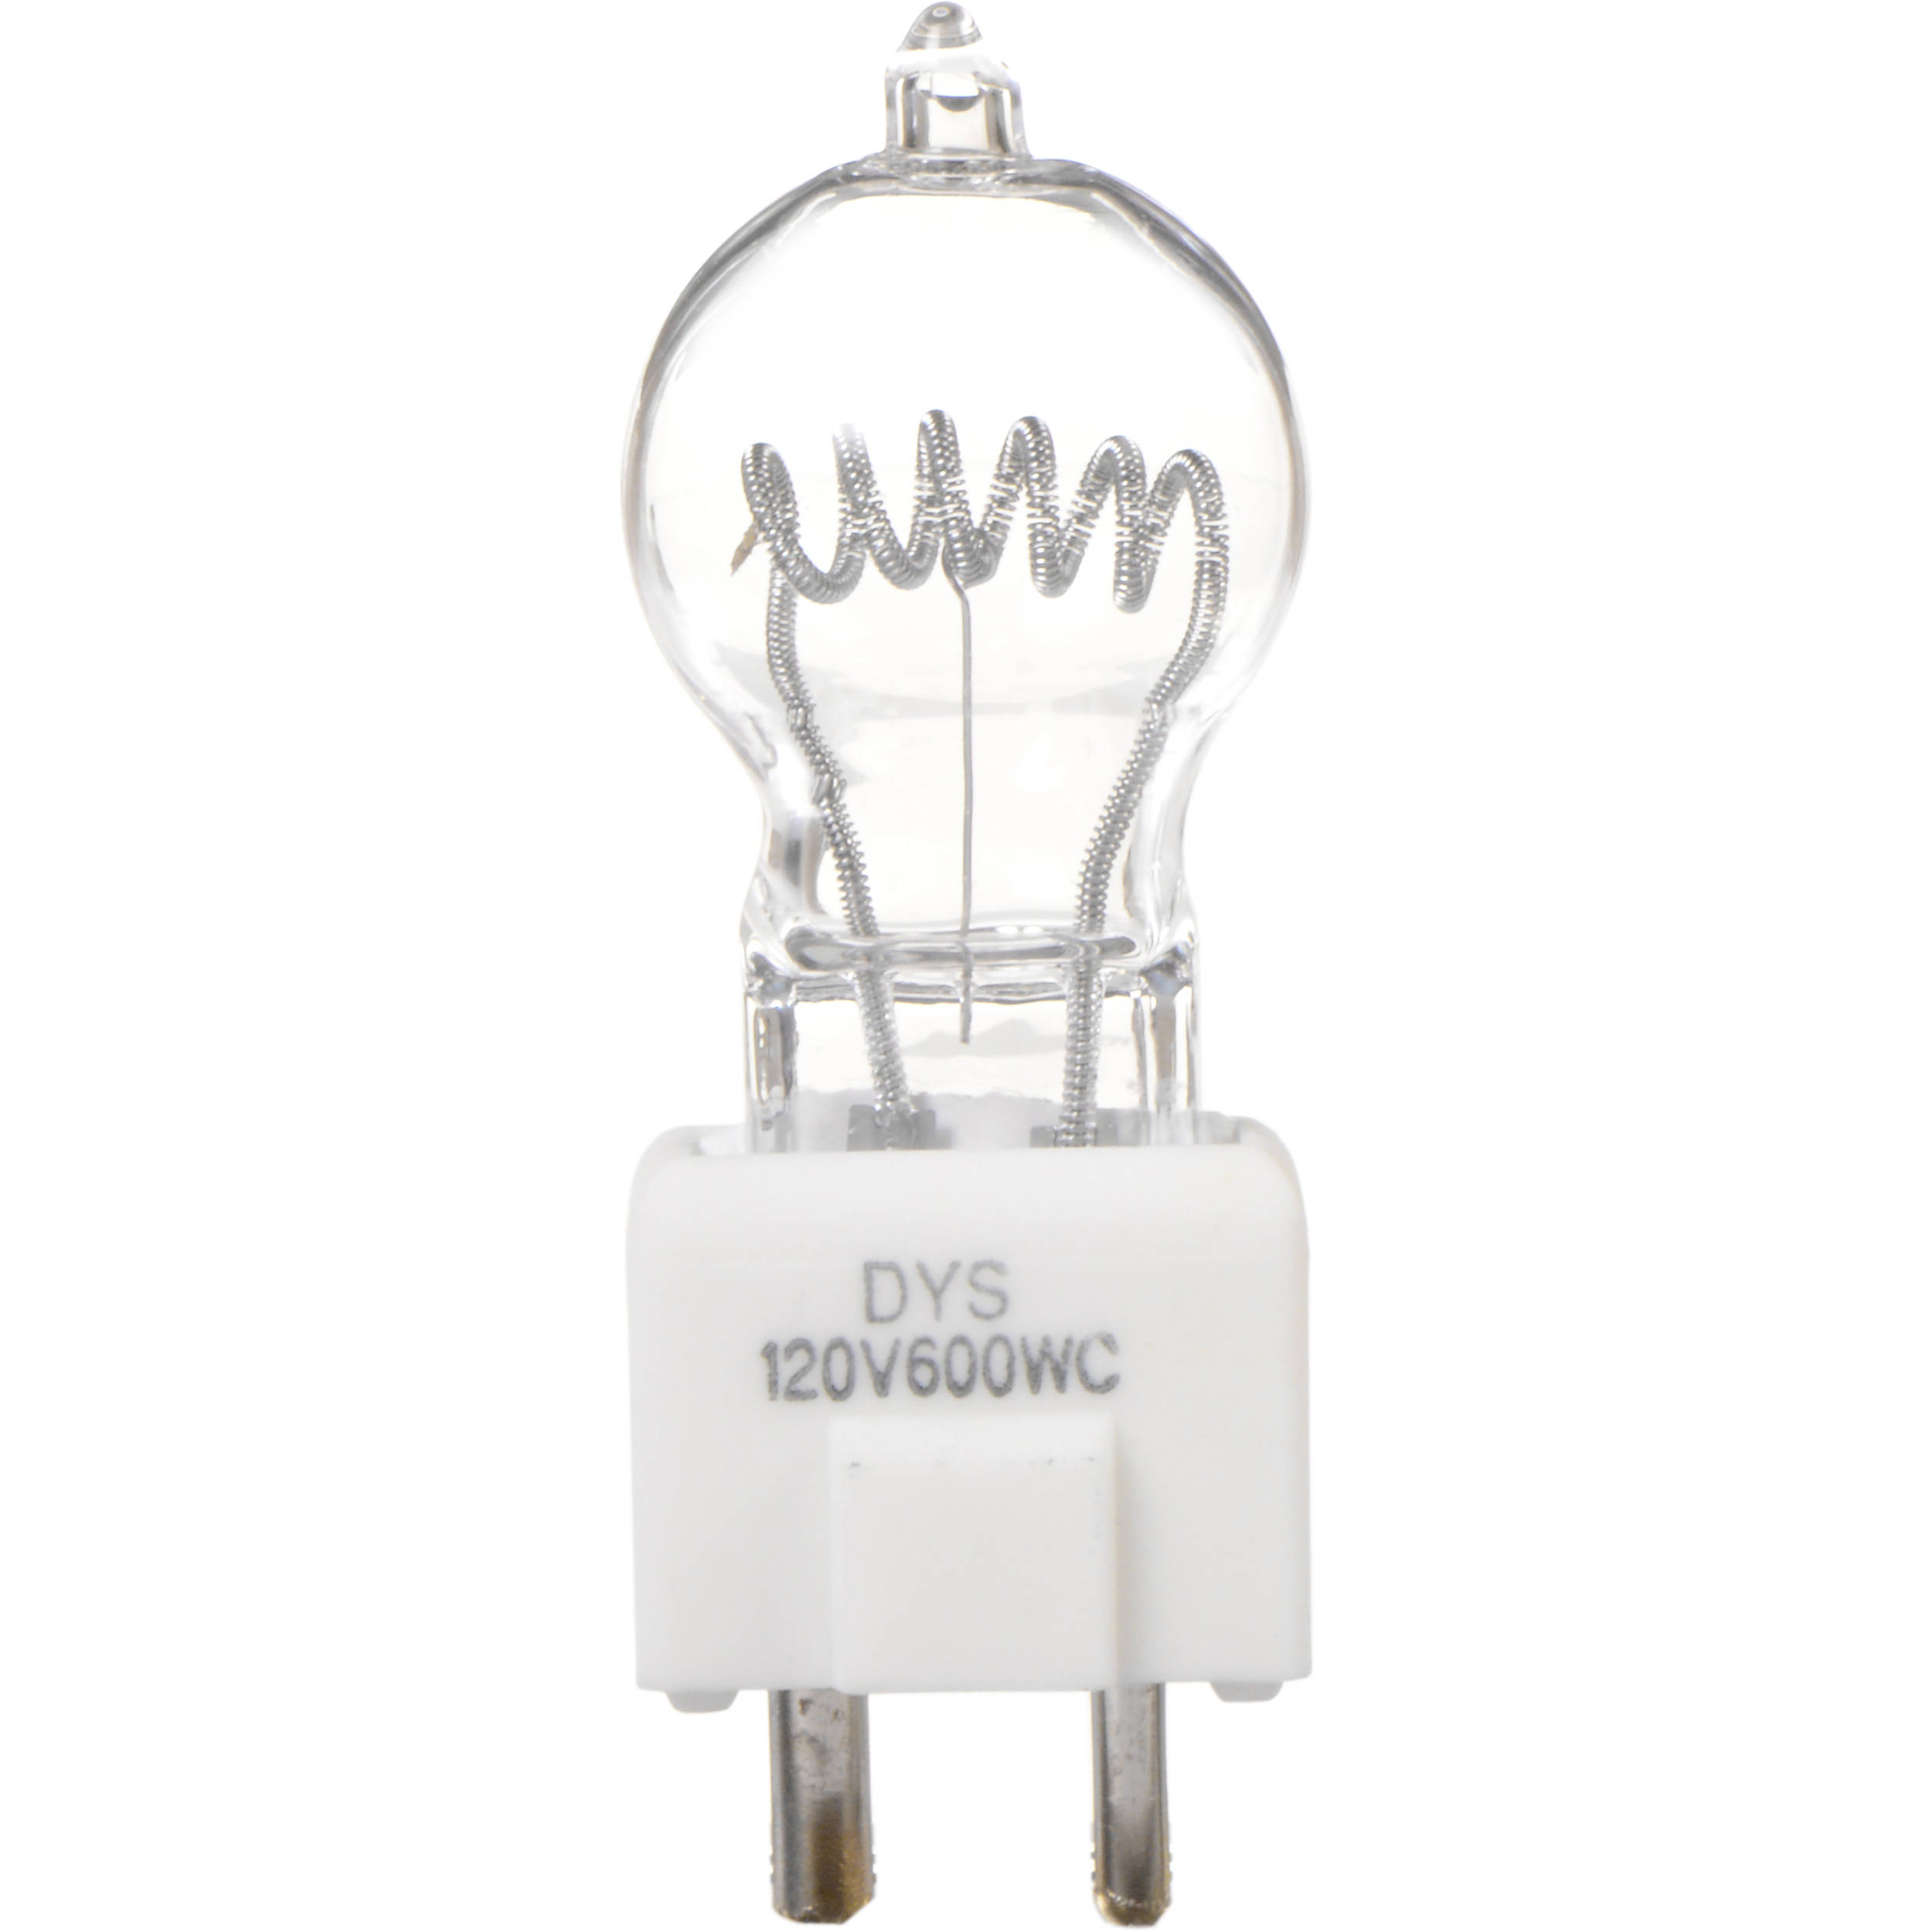 Wonderful Ushio DYS Lamp (600W/120V)